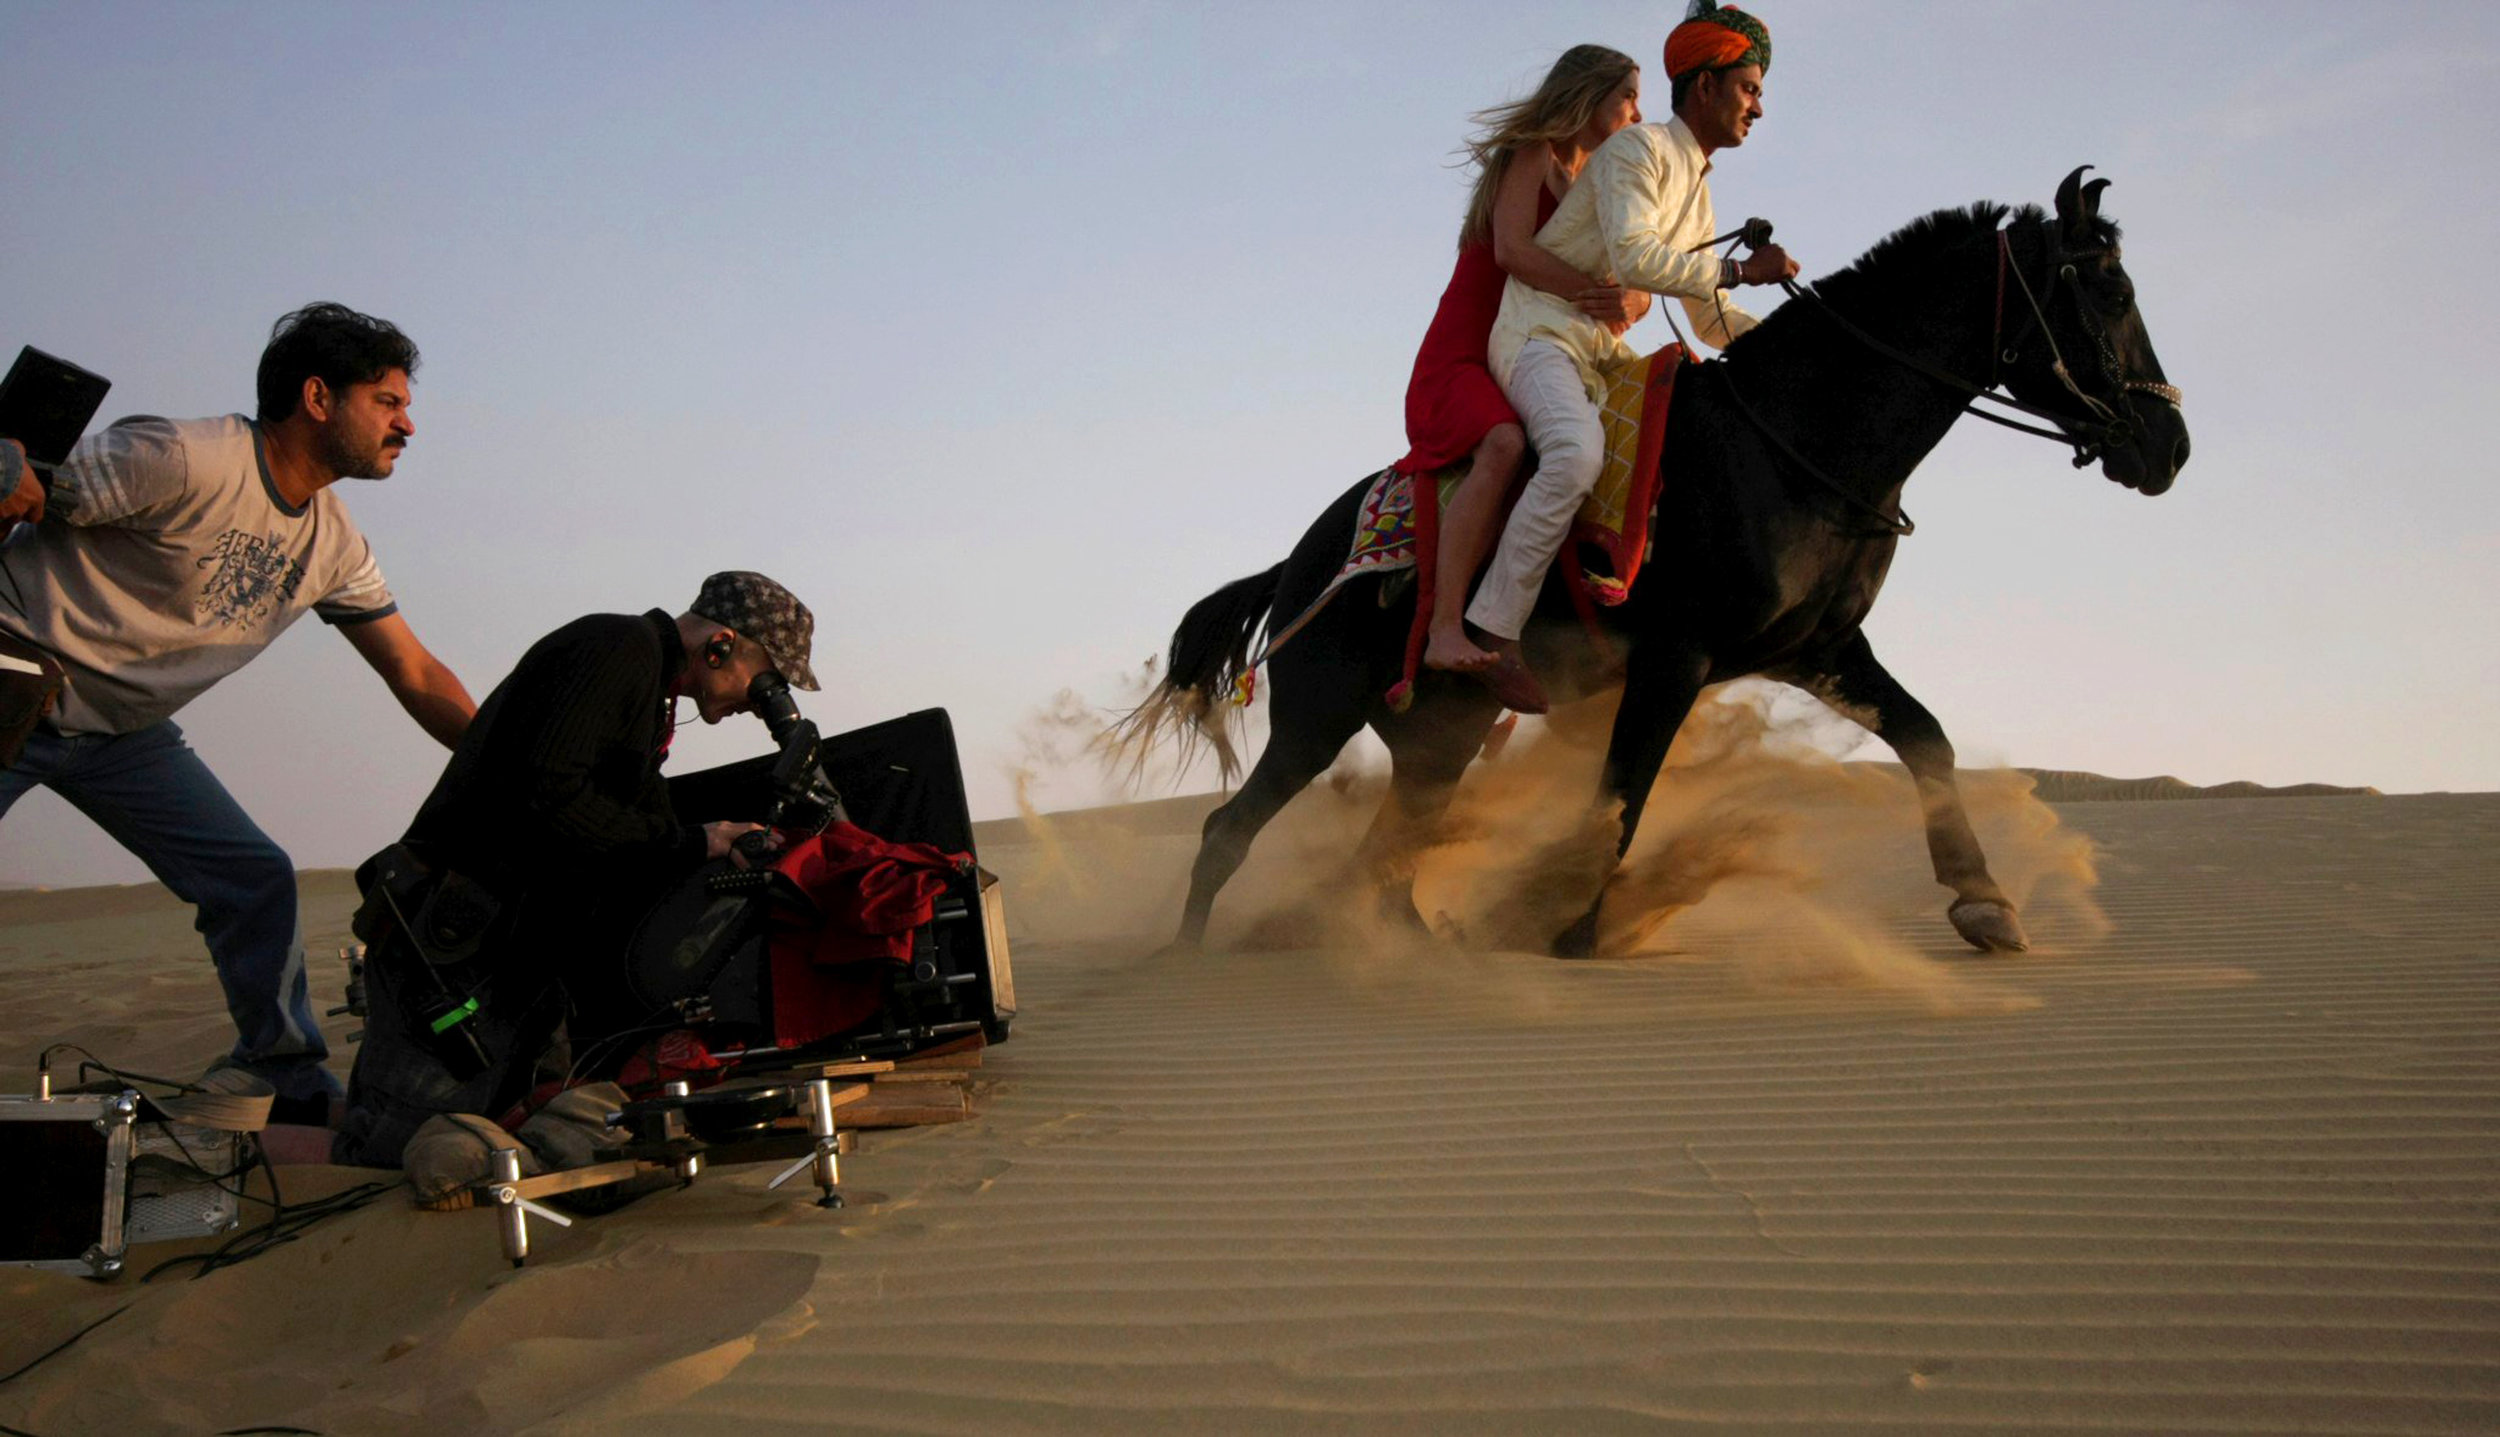 Shooting in Rajasthan 3.jpg